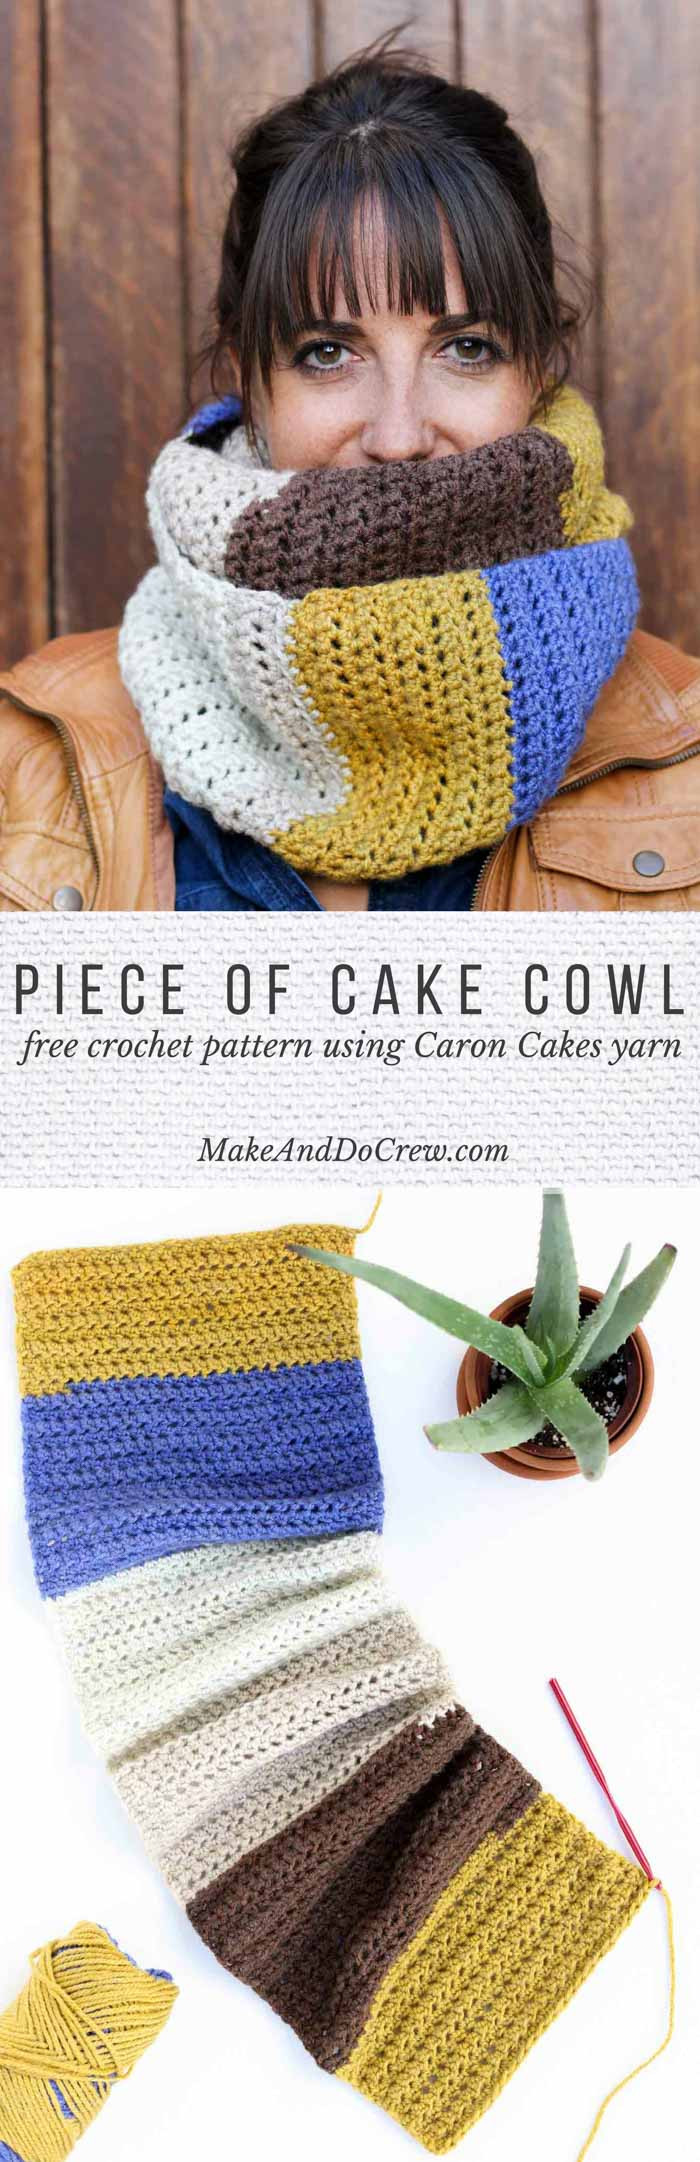 """Piece of Cake Cowl"" With Caron Cakes Yarn Free Crochet"